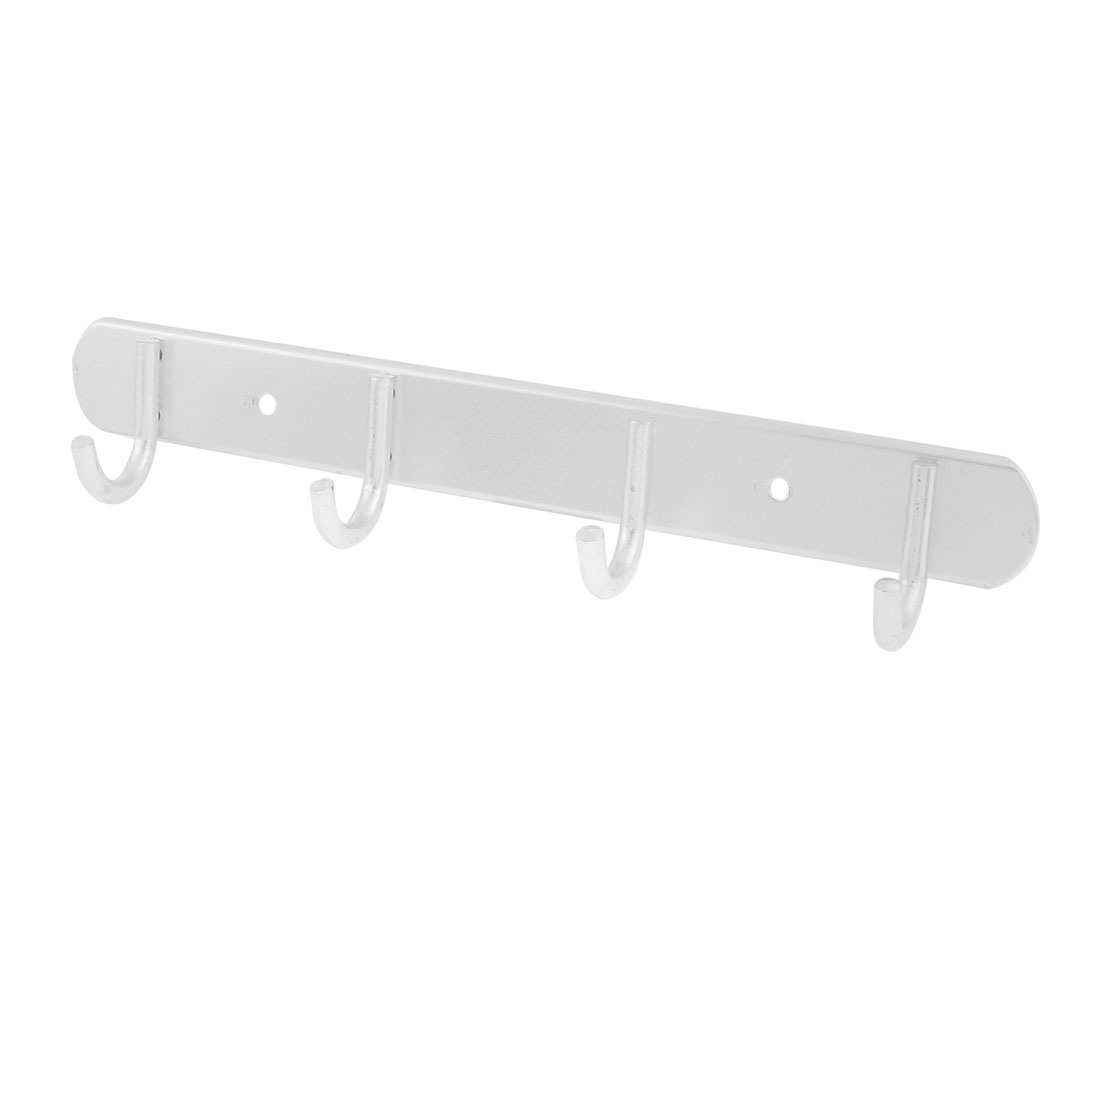 "Household Bathroom Towel Rack Holder Coat Suit Metal 4 Hooks Hanger Wall Door Mounted 11"" Long"